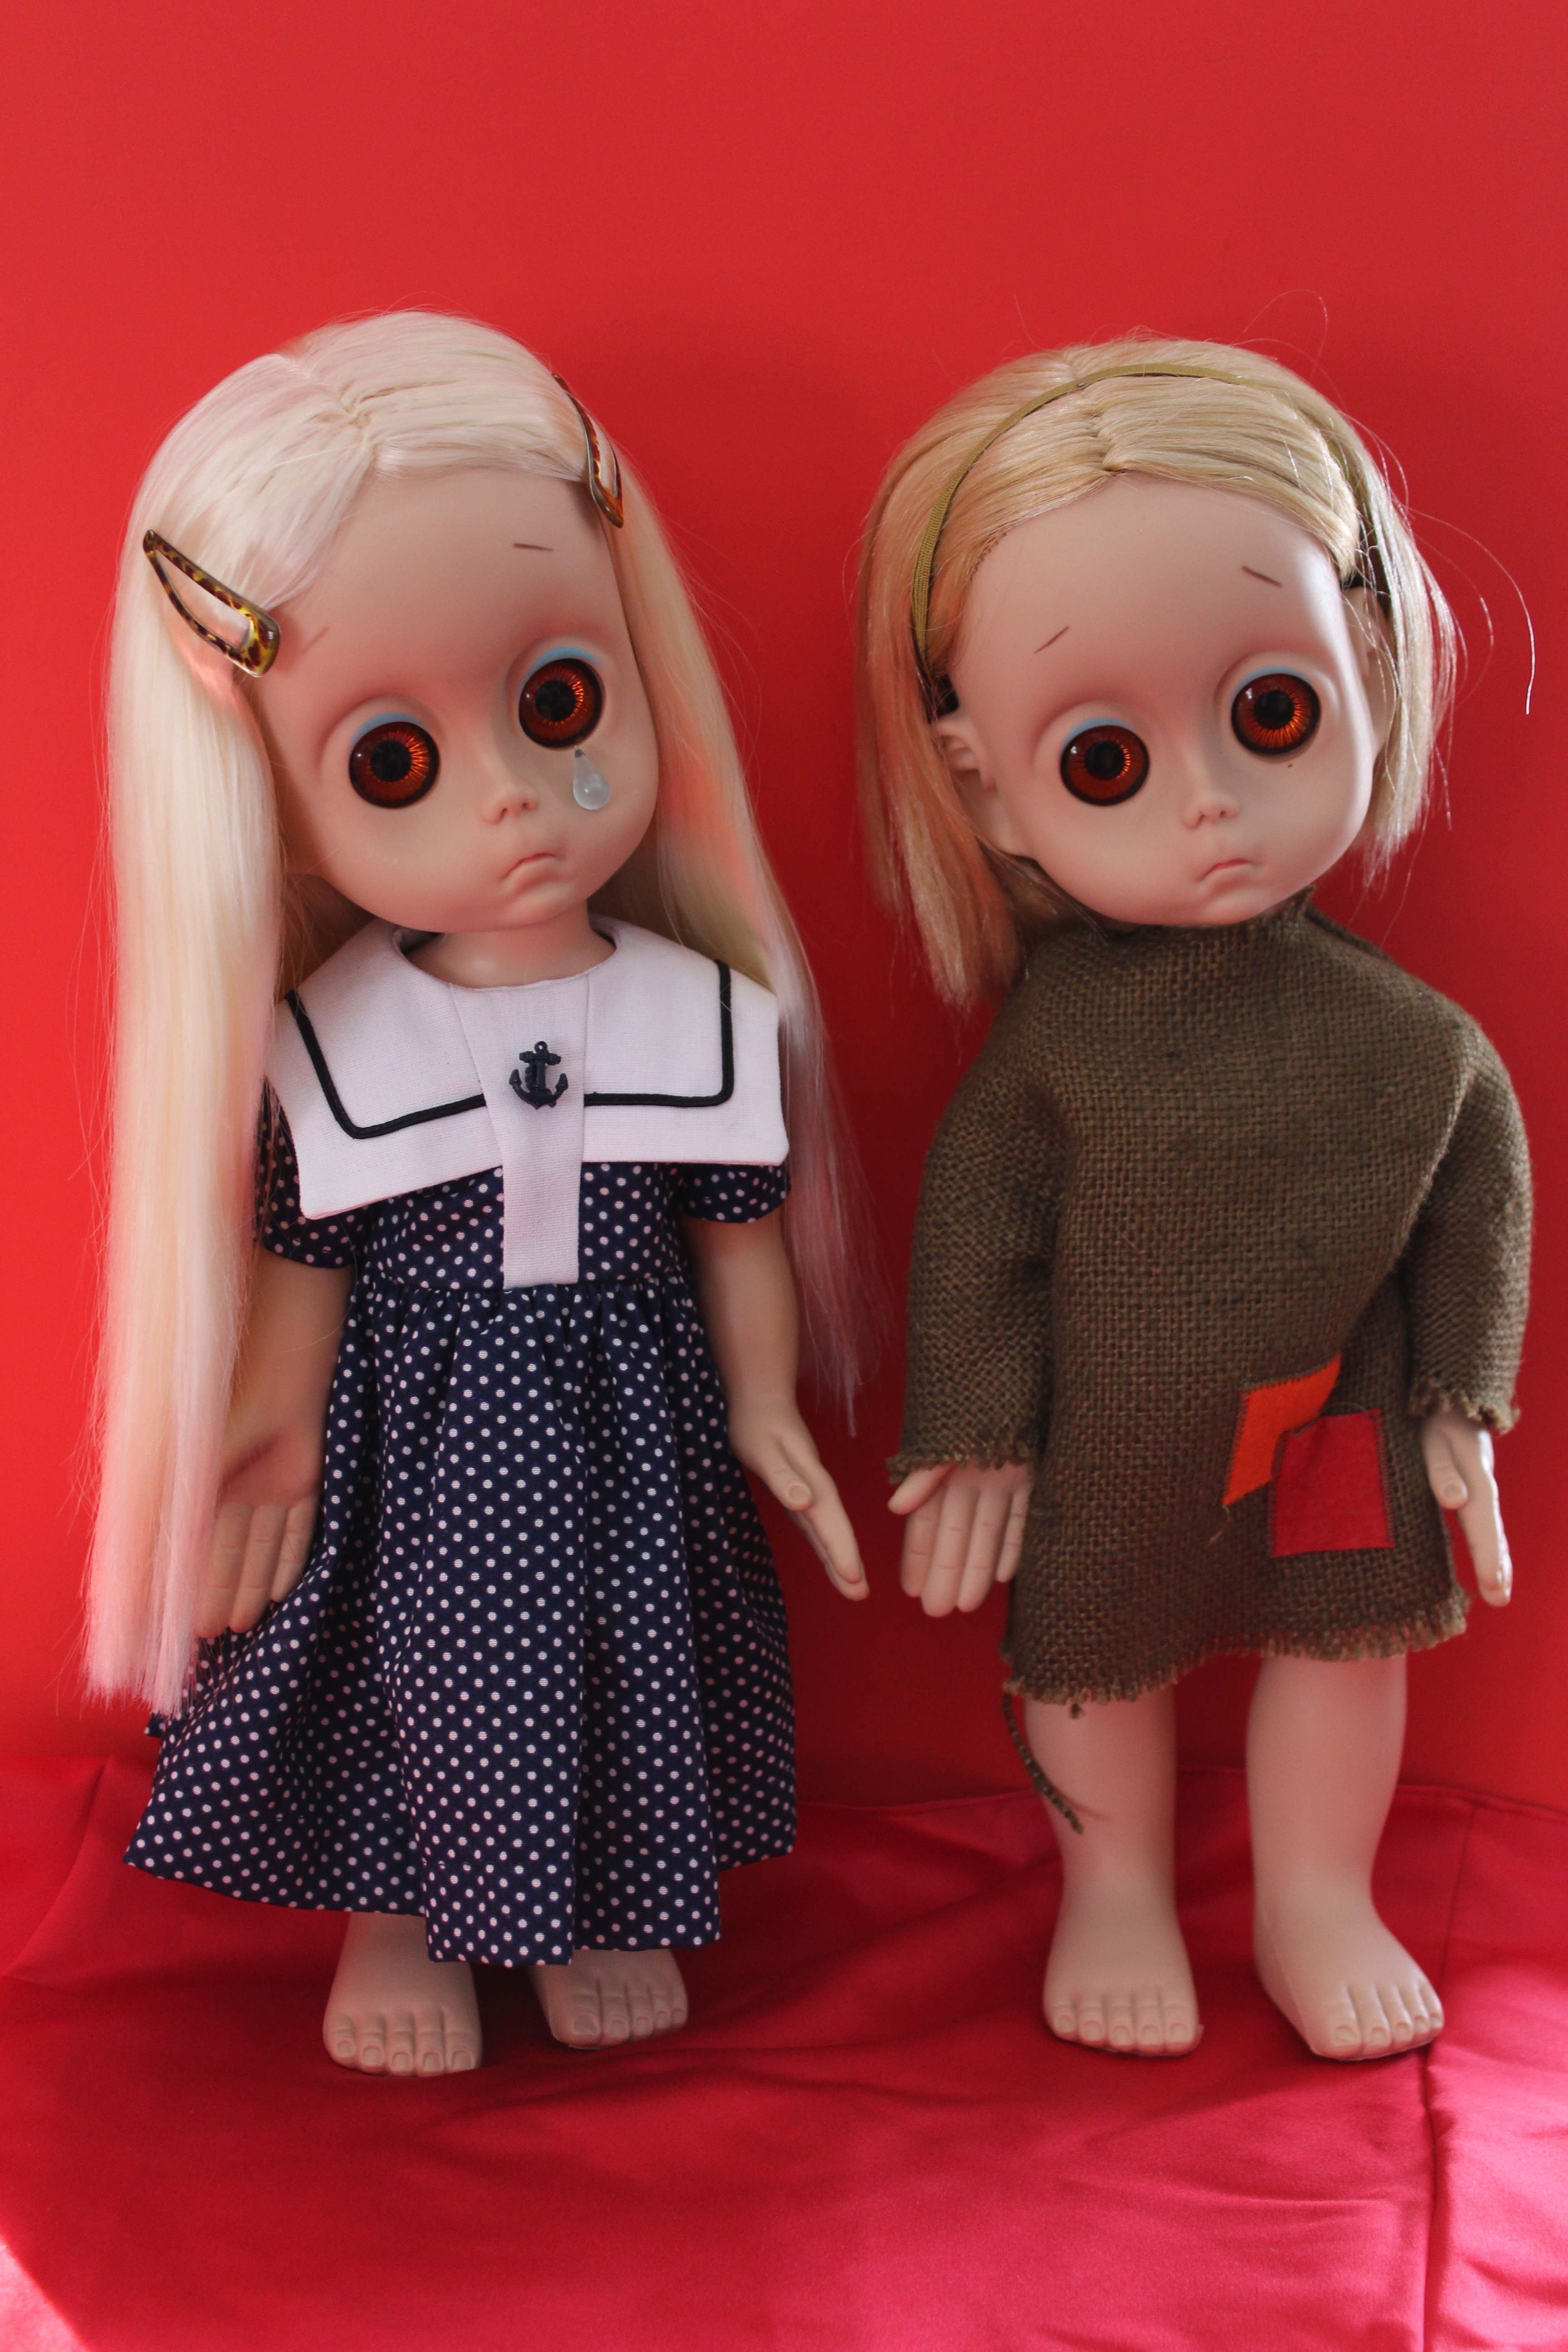 Little Miss Muffett Pretty Cute Doll Clothes Pattern 18: Dolly Re-Root: Little Miss No Name